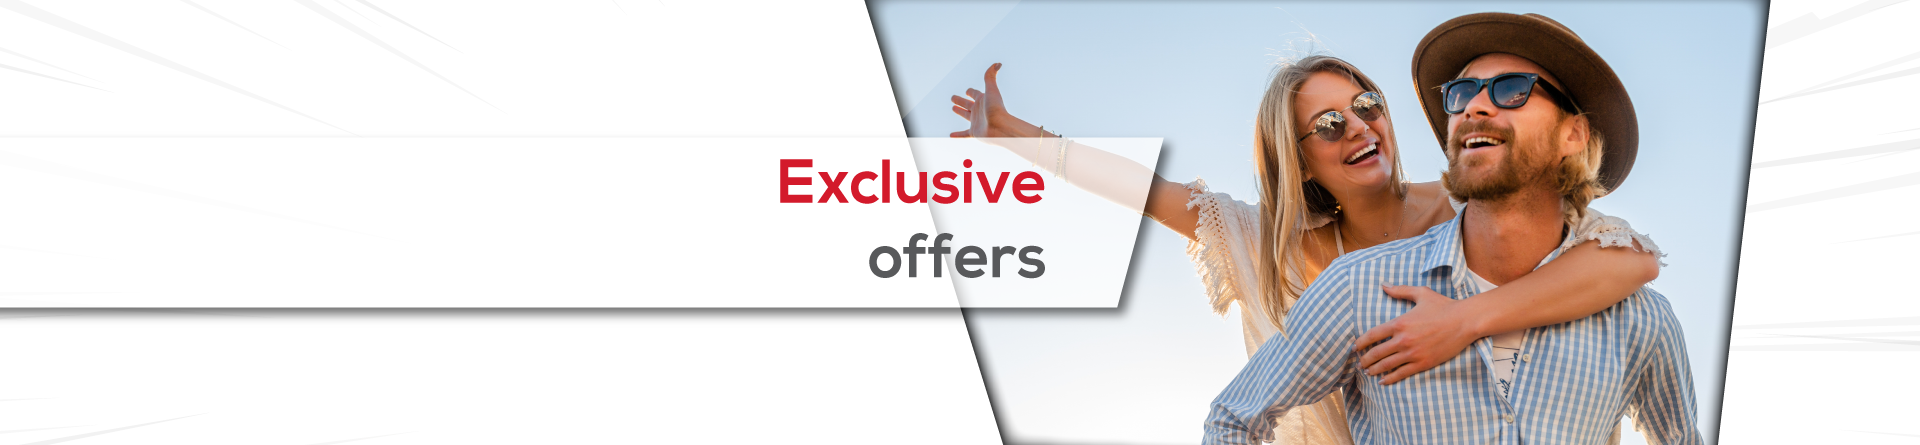 Enjoy our exclusive offers City Residence for your next stay in hotel apartments